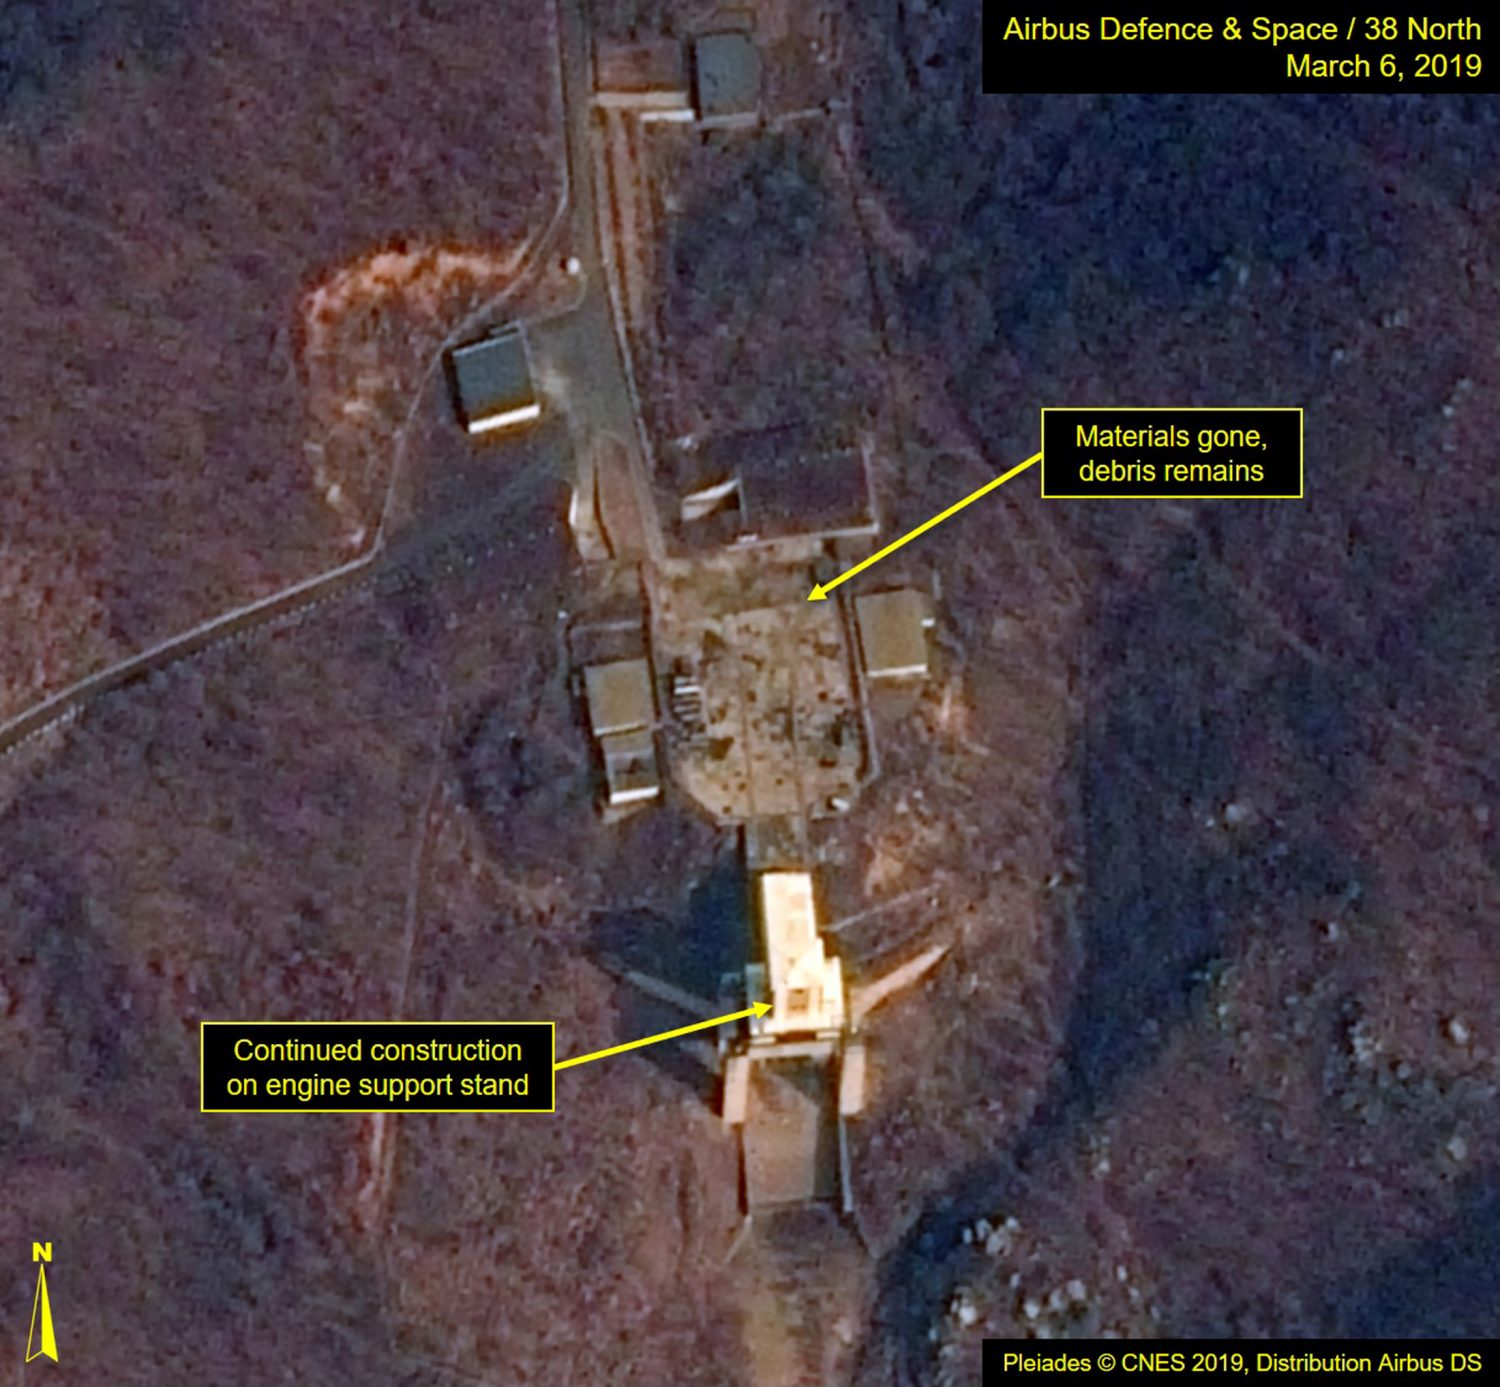 """A satellite image of North Korea's Sohae Satellite Launching Station (Tongchang-ri) which Washington-based Stimson Center's 38 North says, """"Rebuilding continues at the engine test stand"""" is seen in this image released from Washington, DC, U.S., March 7, 2019. Courtesy Airbus Defence & Space and 38 North, Pleiades © CNES 2019, Distribution Airbus DS/Handout via REUTERS"""